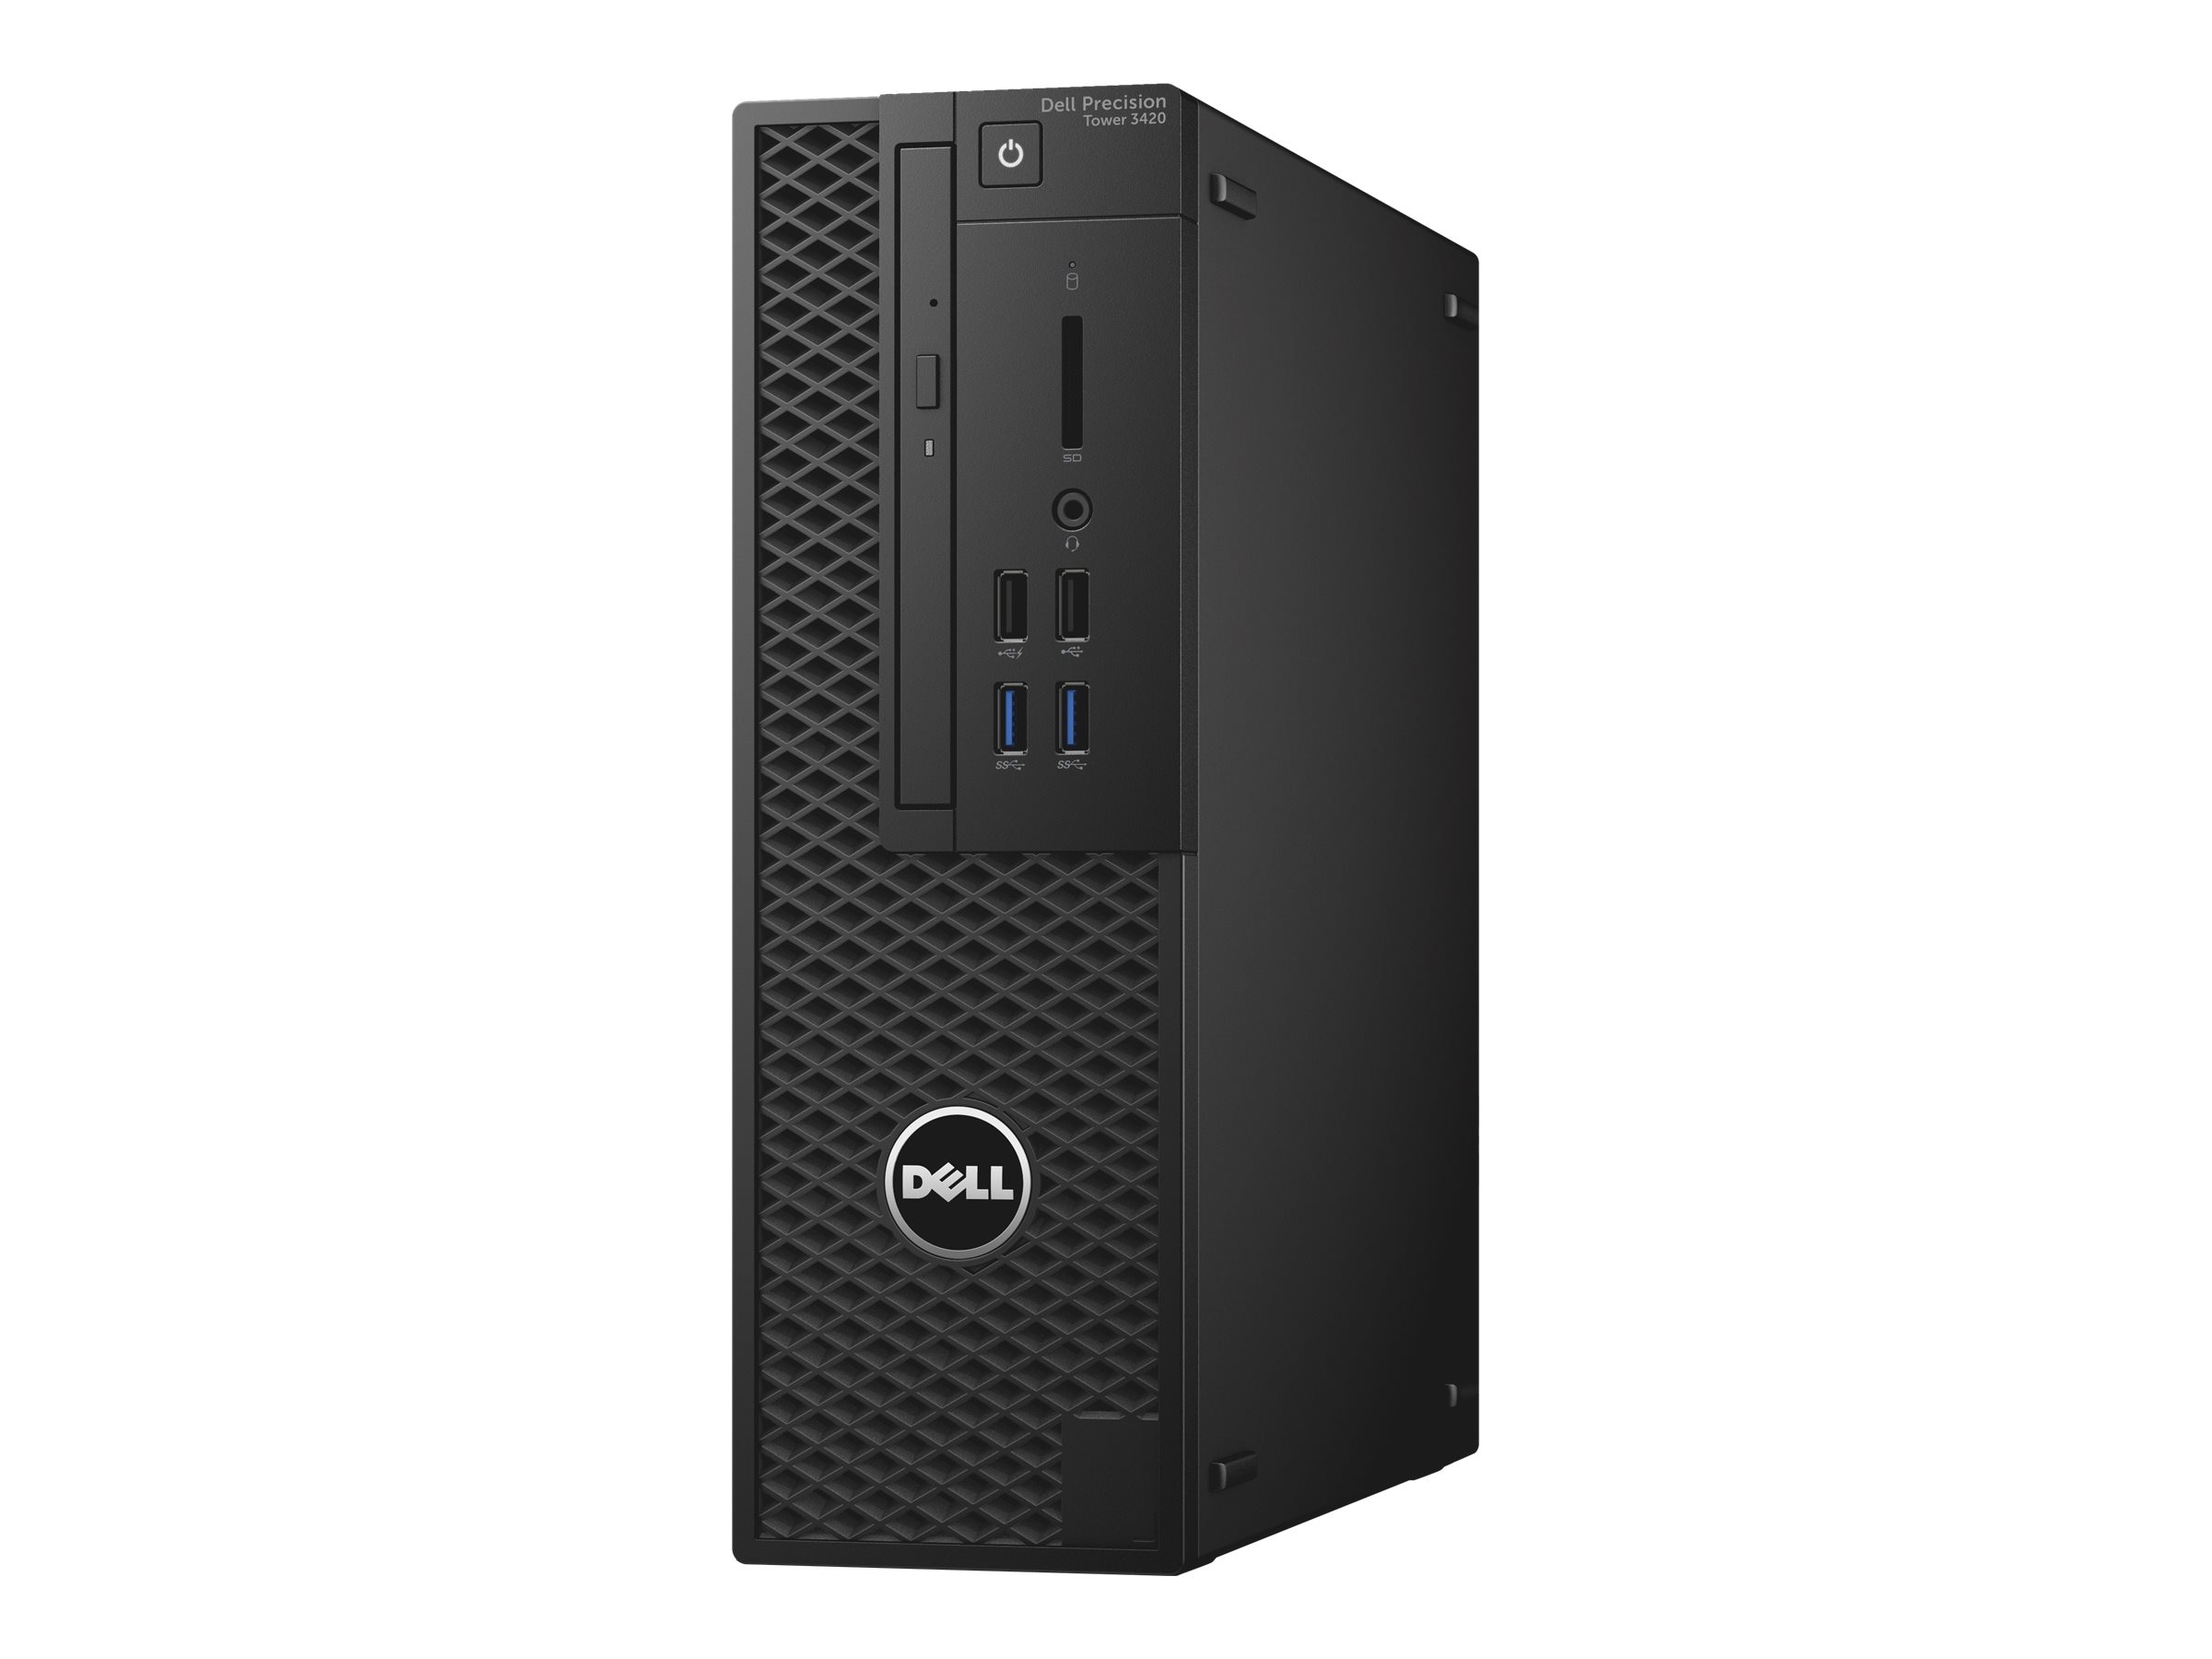 Dell Precision 3420 3.2GHz Core i5 Microsoft Windows 7 Professional 64-bit Edition   Windows 10 Pro